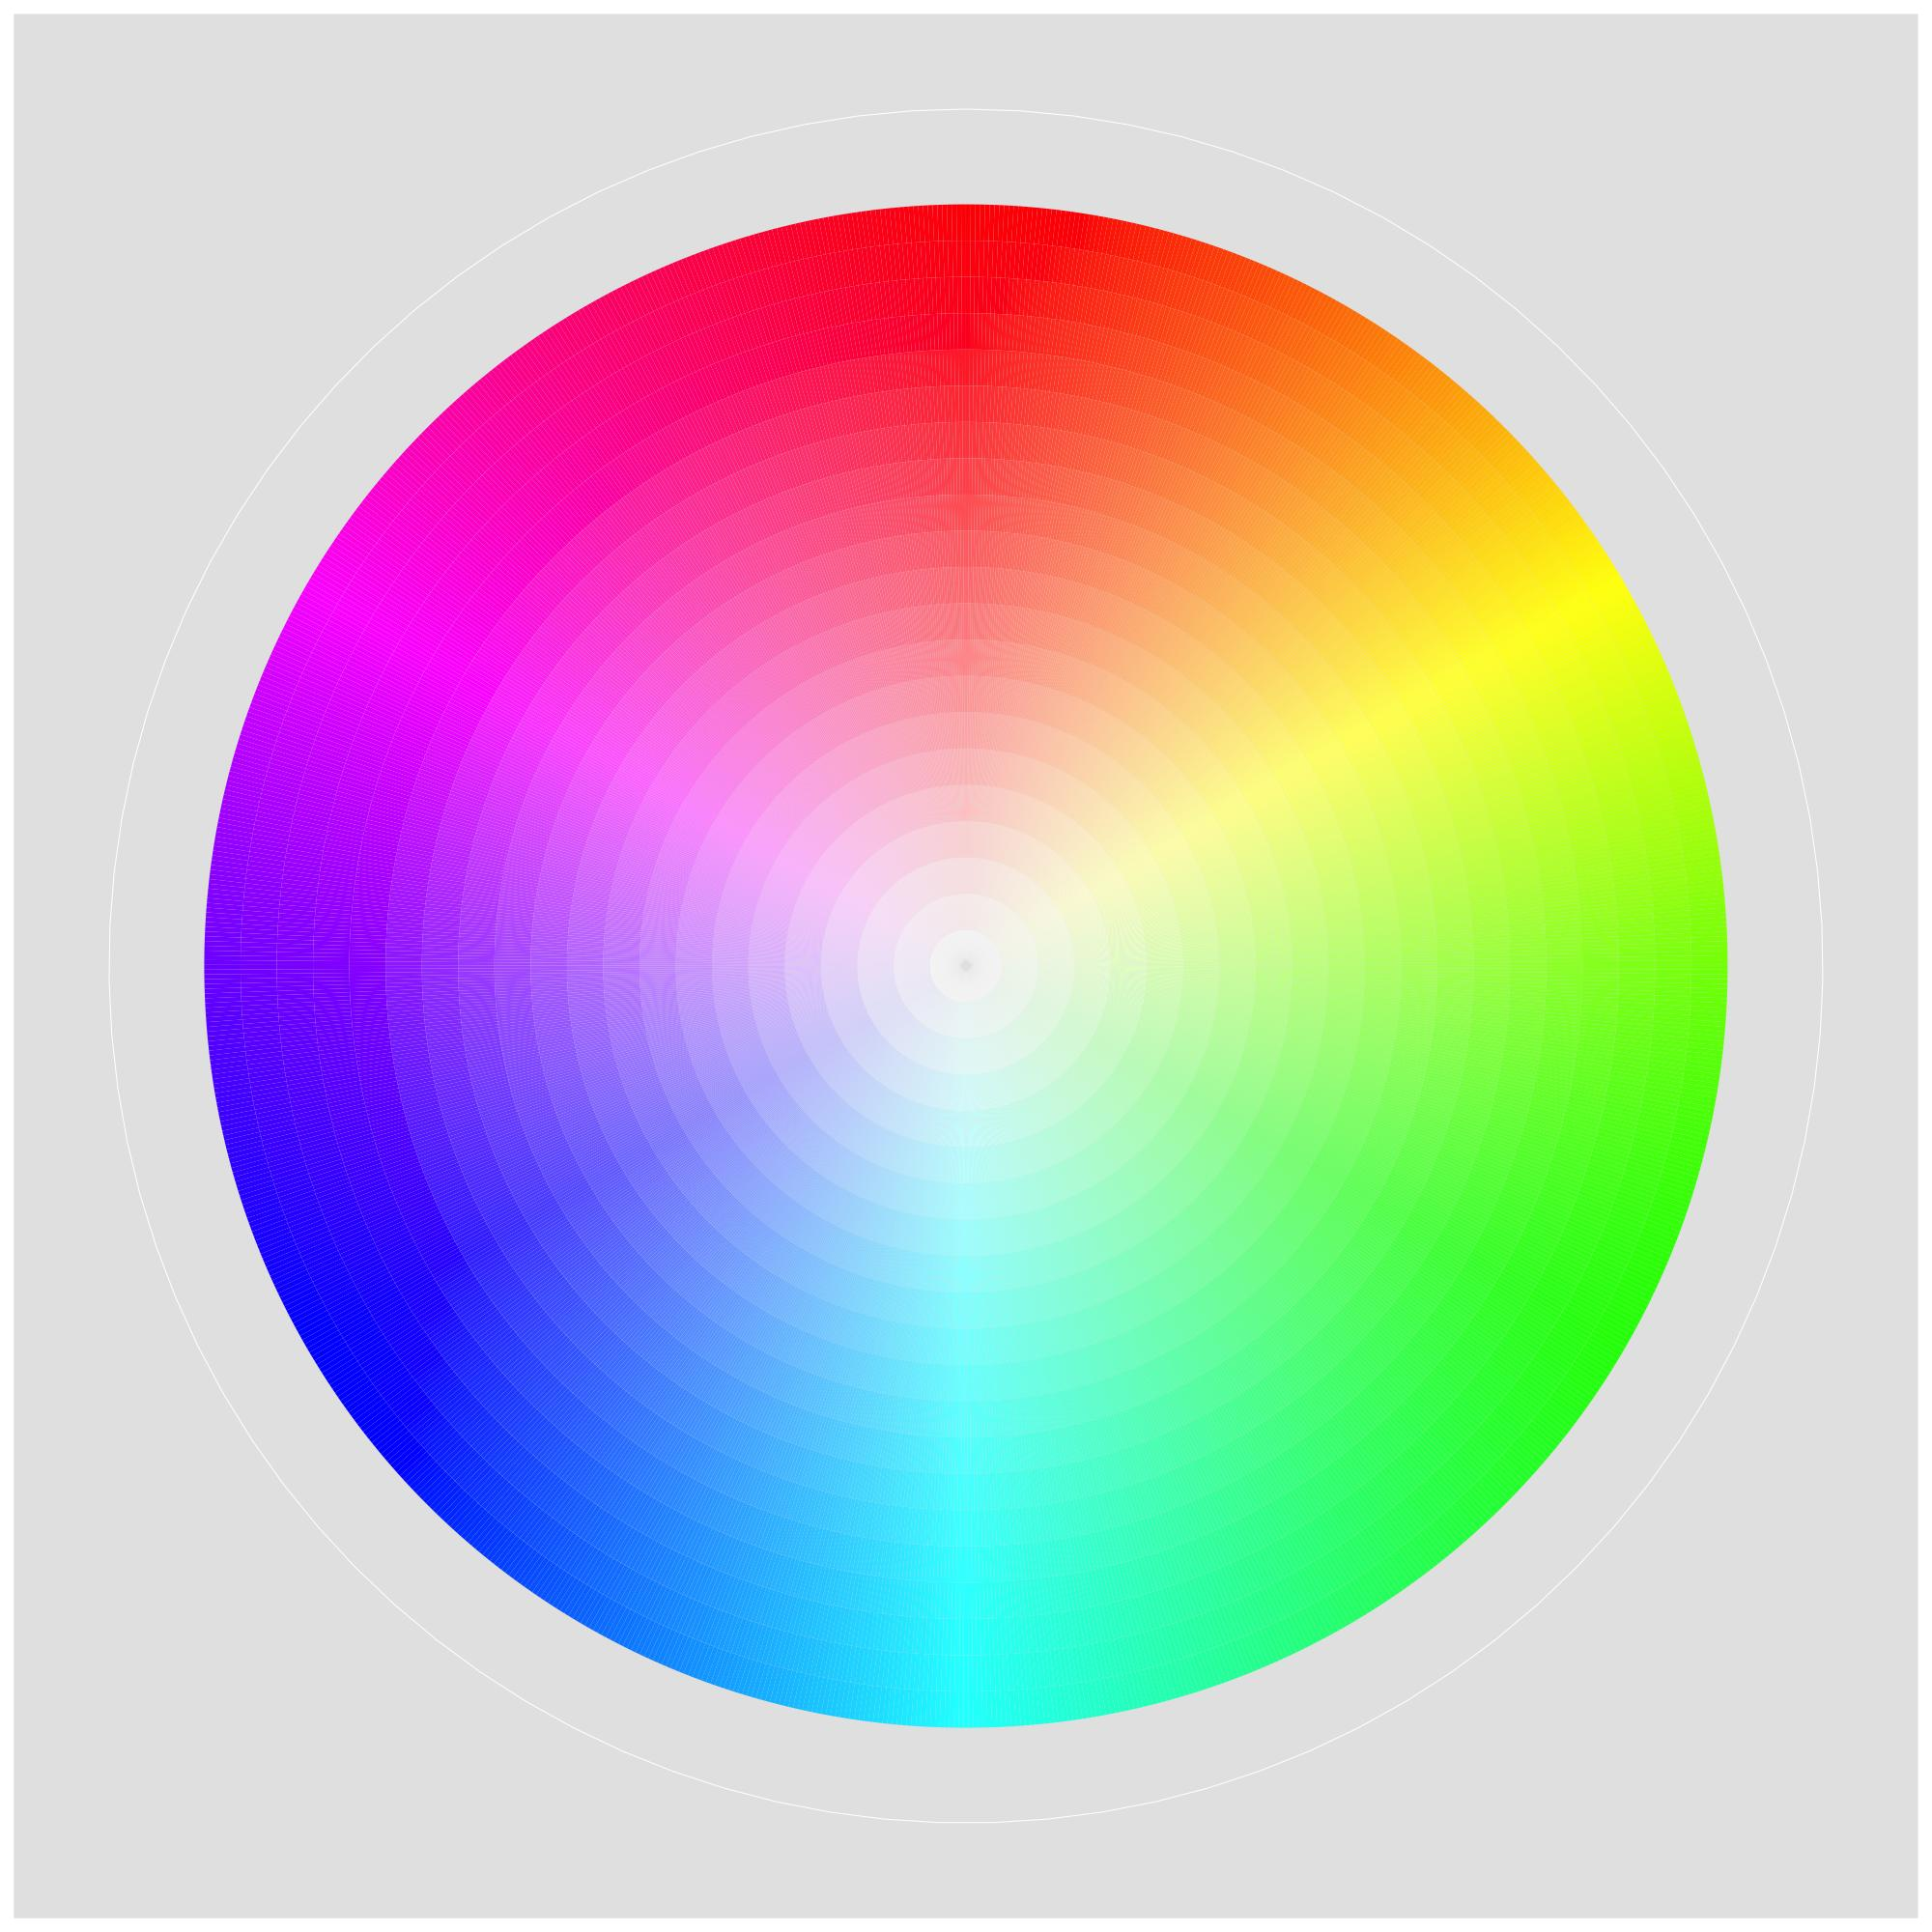 color wheel for makeup application